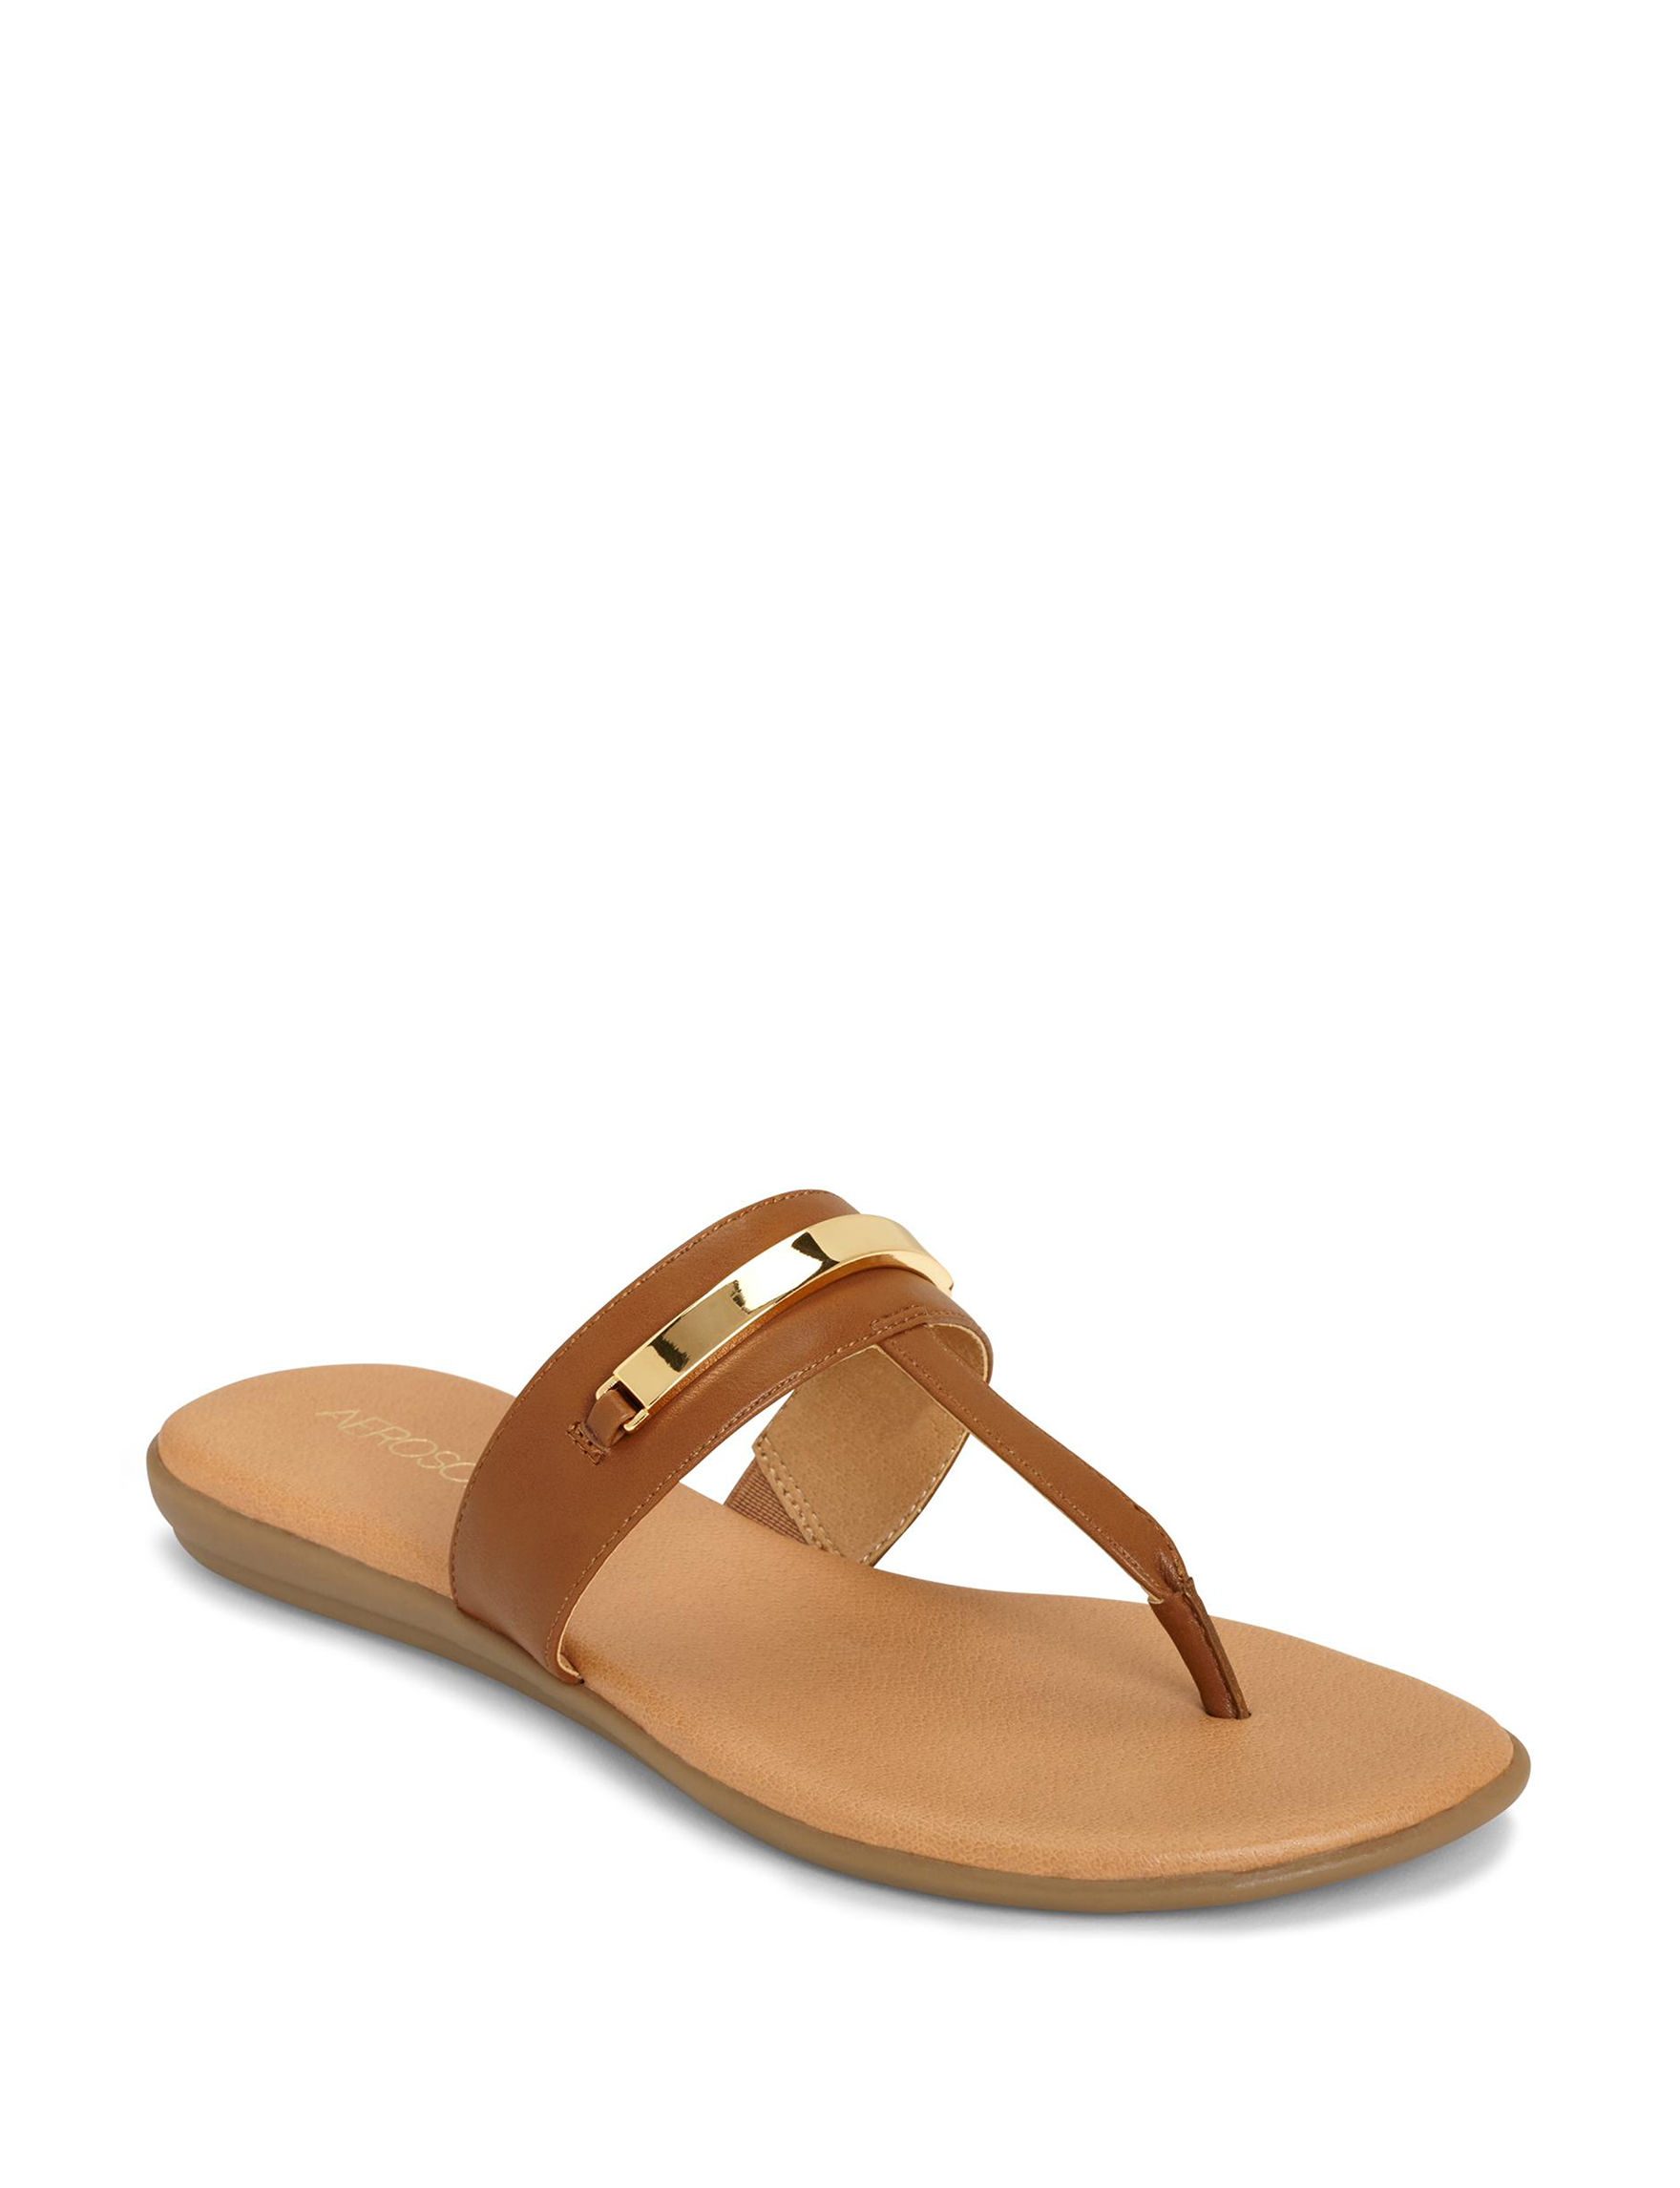 Aerosoles Dark Tan Flat Sandals Flip Flops